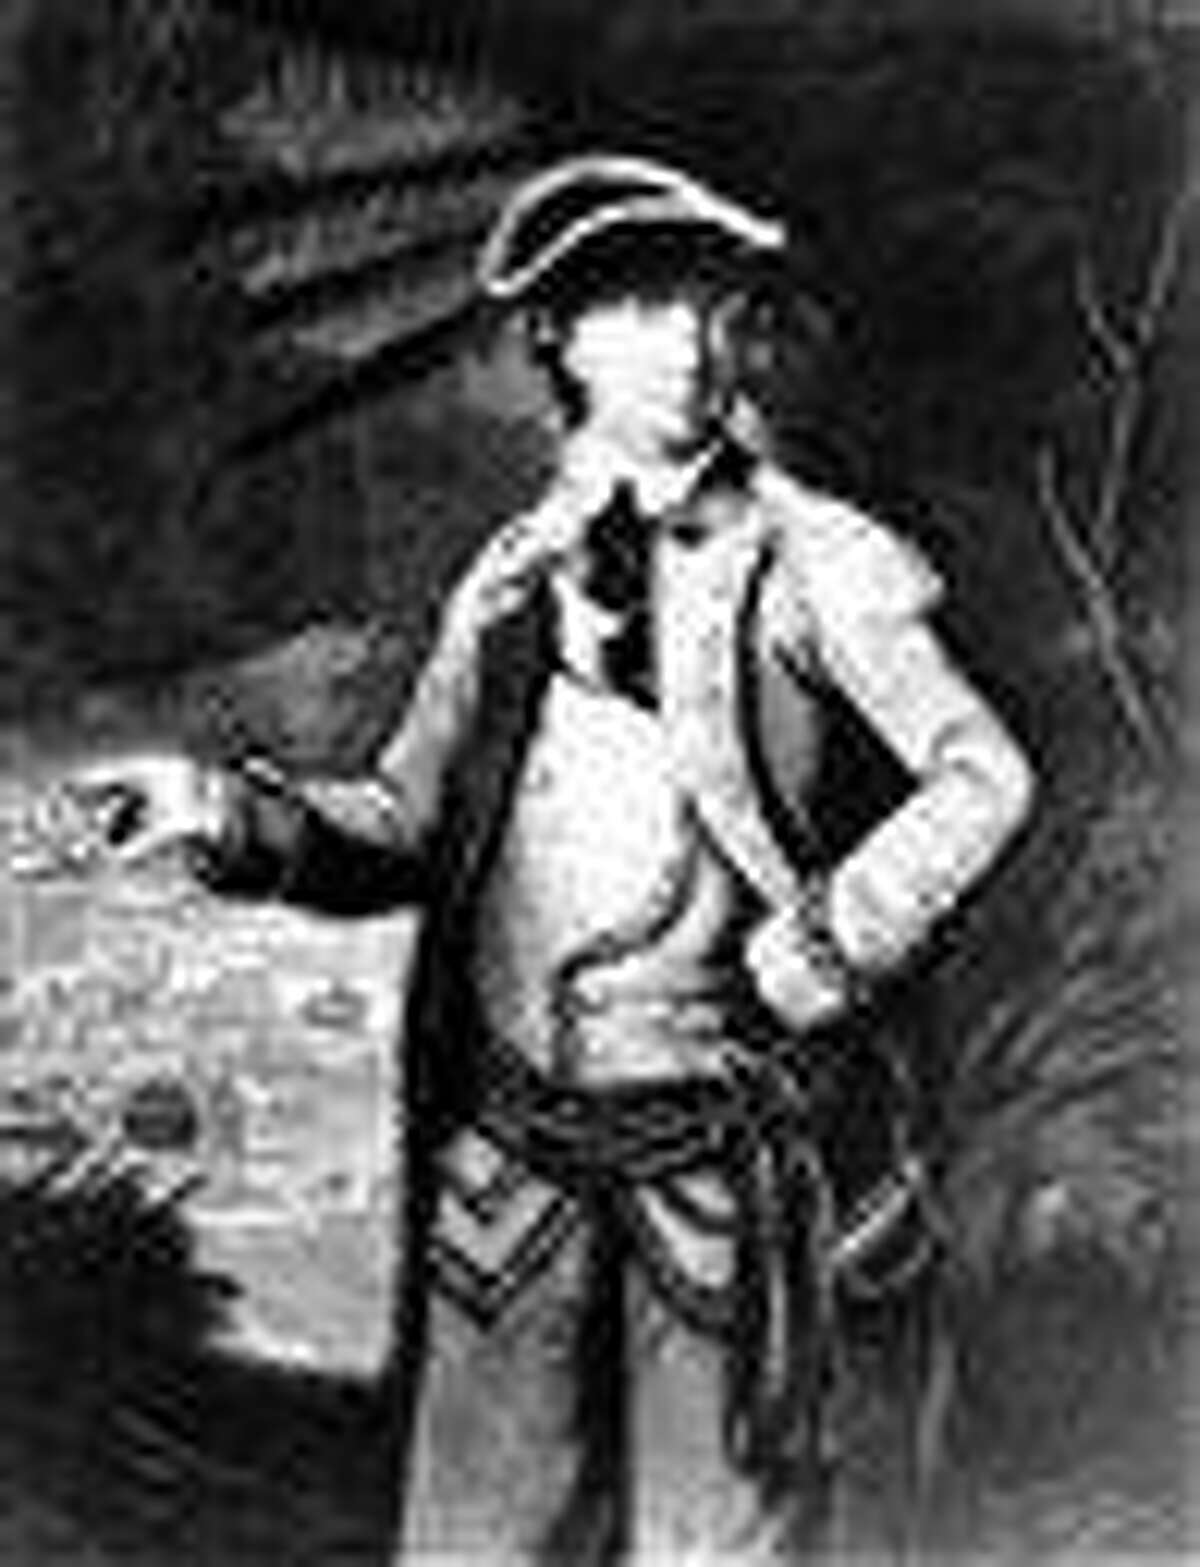 This undated sketch of Gen. Benedict Arnold by an unknown artist was provided by the Library of Congress. While most Americans know Arnold as the man who betrayed his nation by trying to turn over the American fortifications at West Point to the British, then joining the redcoats when the plot was uncovered, his heroic actions at the Revolutionary War's Battle of Saratoga are detailed in a new exhibit opening Thursday at Saratoga National Historical Park. Associated Press